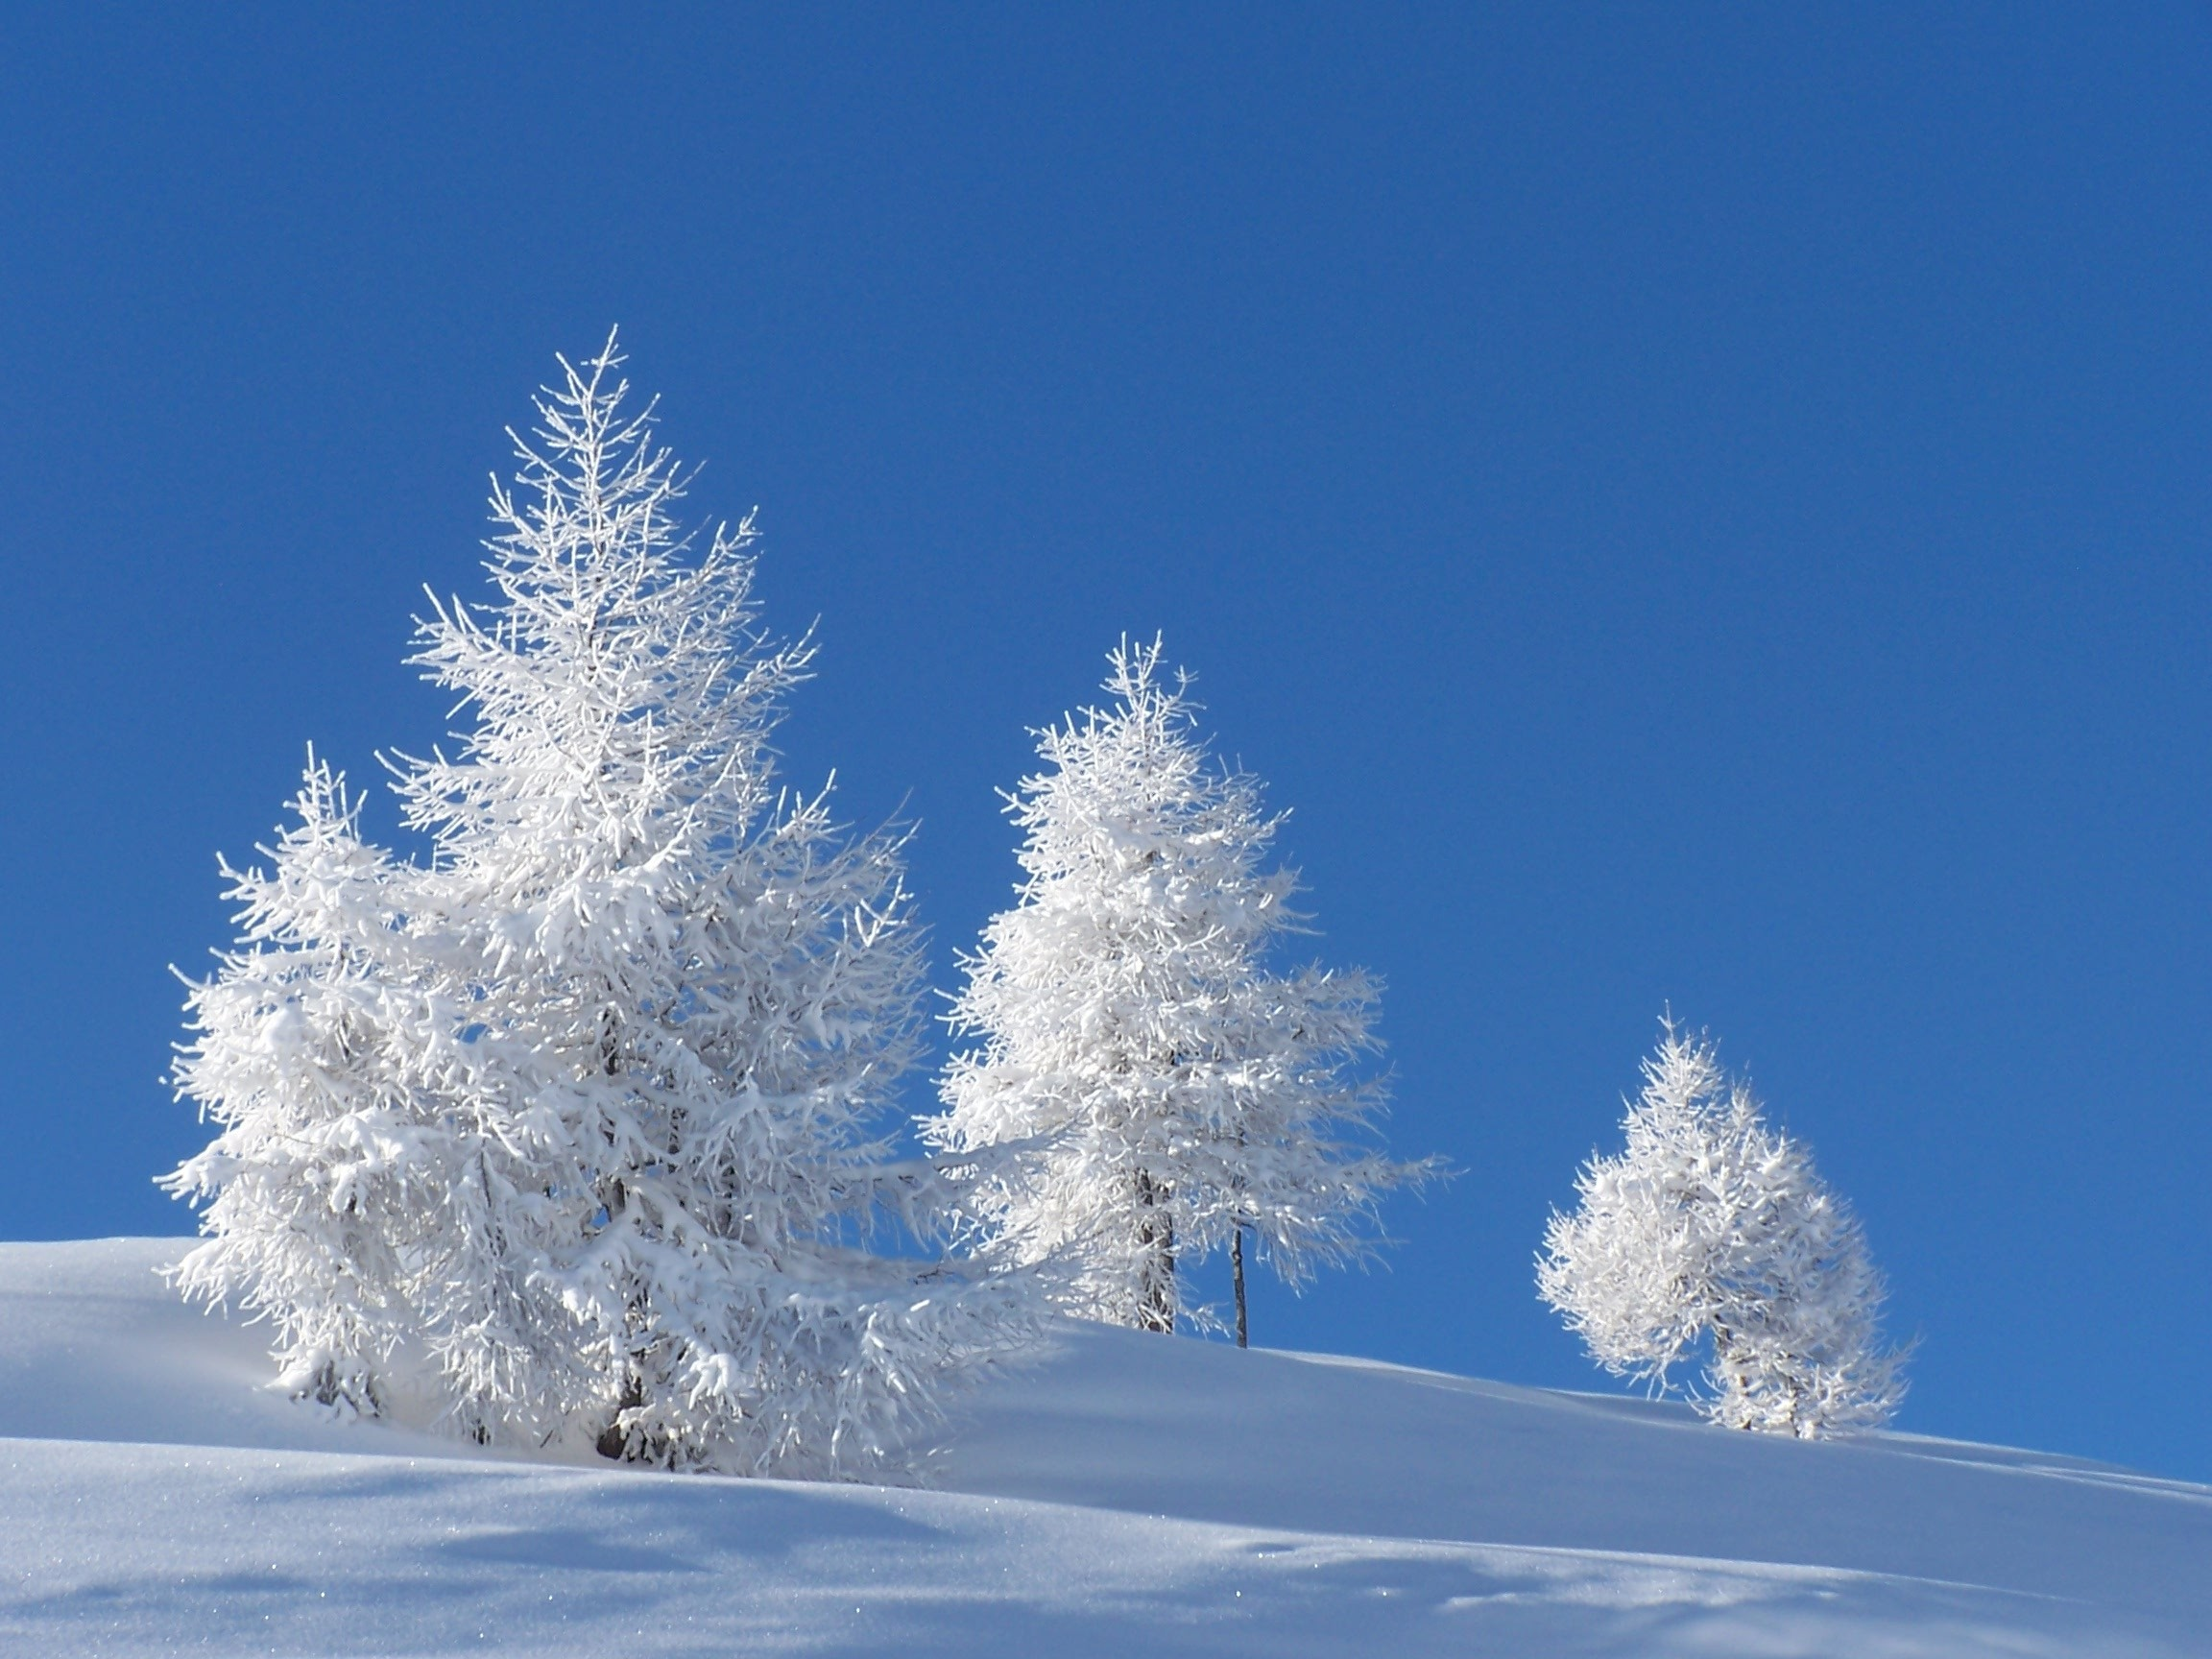 pin snow wallpapers trees - photo #15